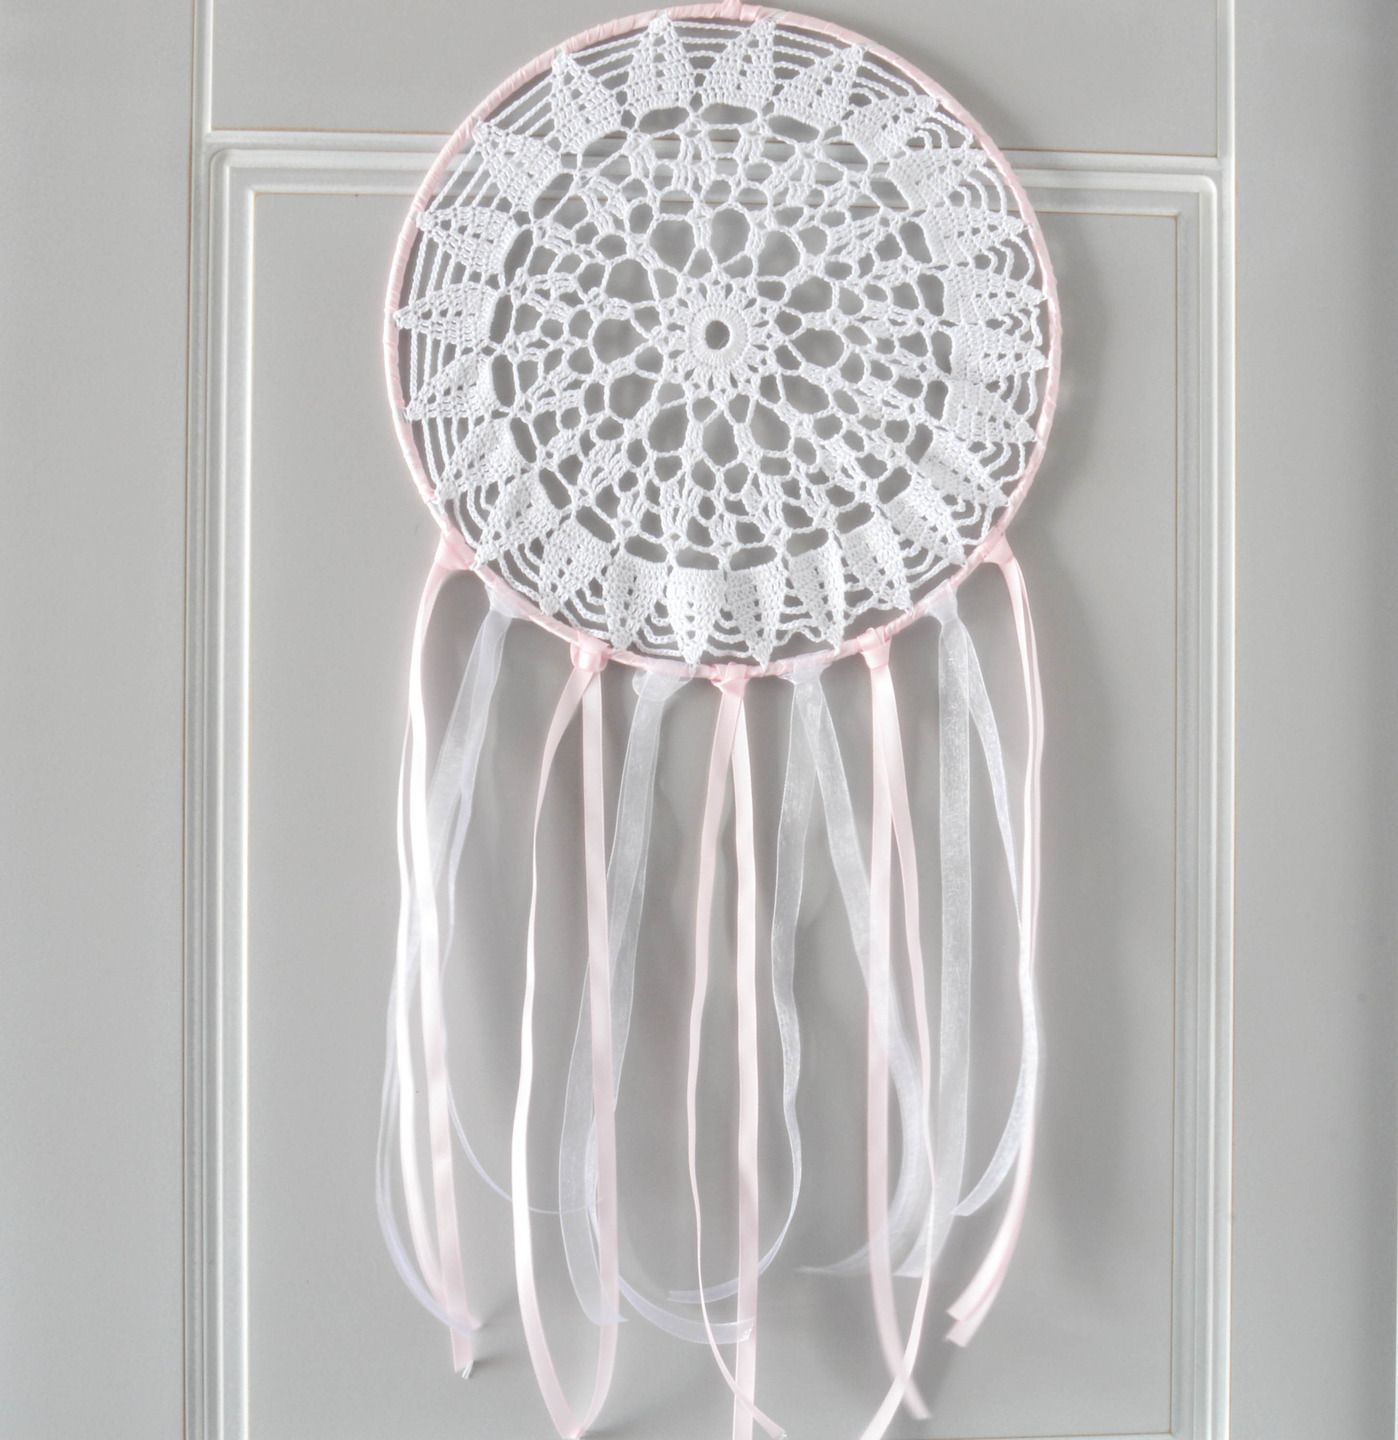 attrape r ves dreamcatcher capteur de r ve 25 cm de diam tre napperon au crochet th me. Black Bedroom Furniture Sets. Home Design Ideas